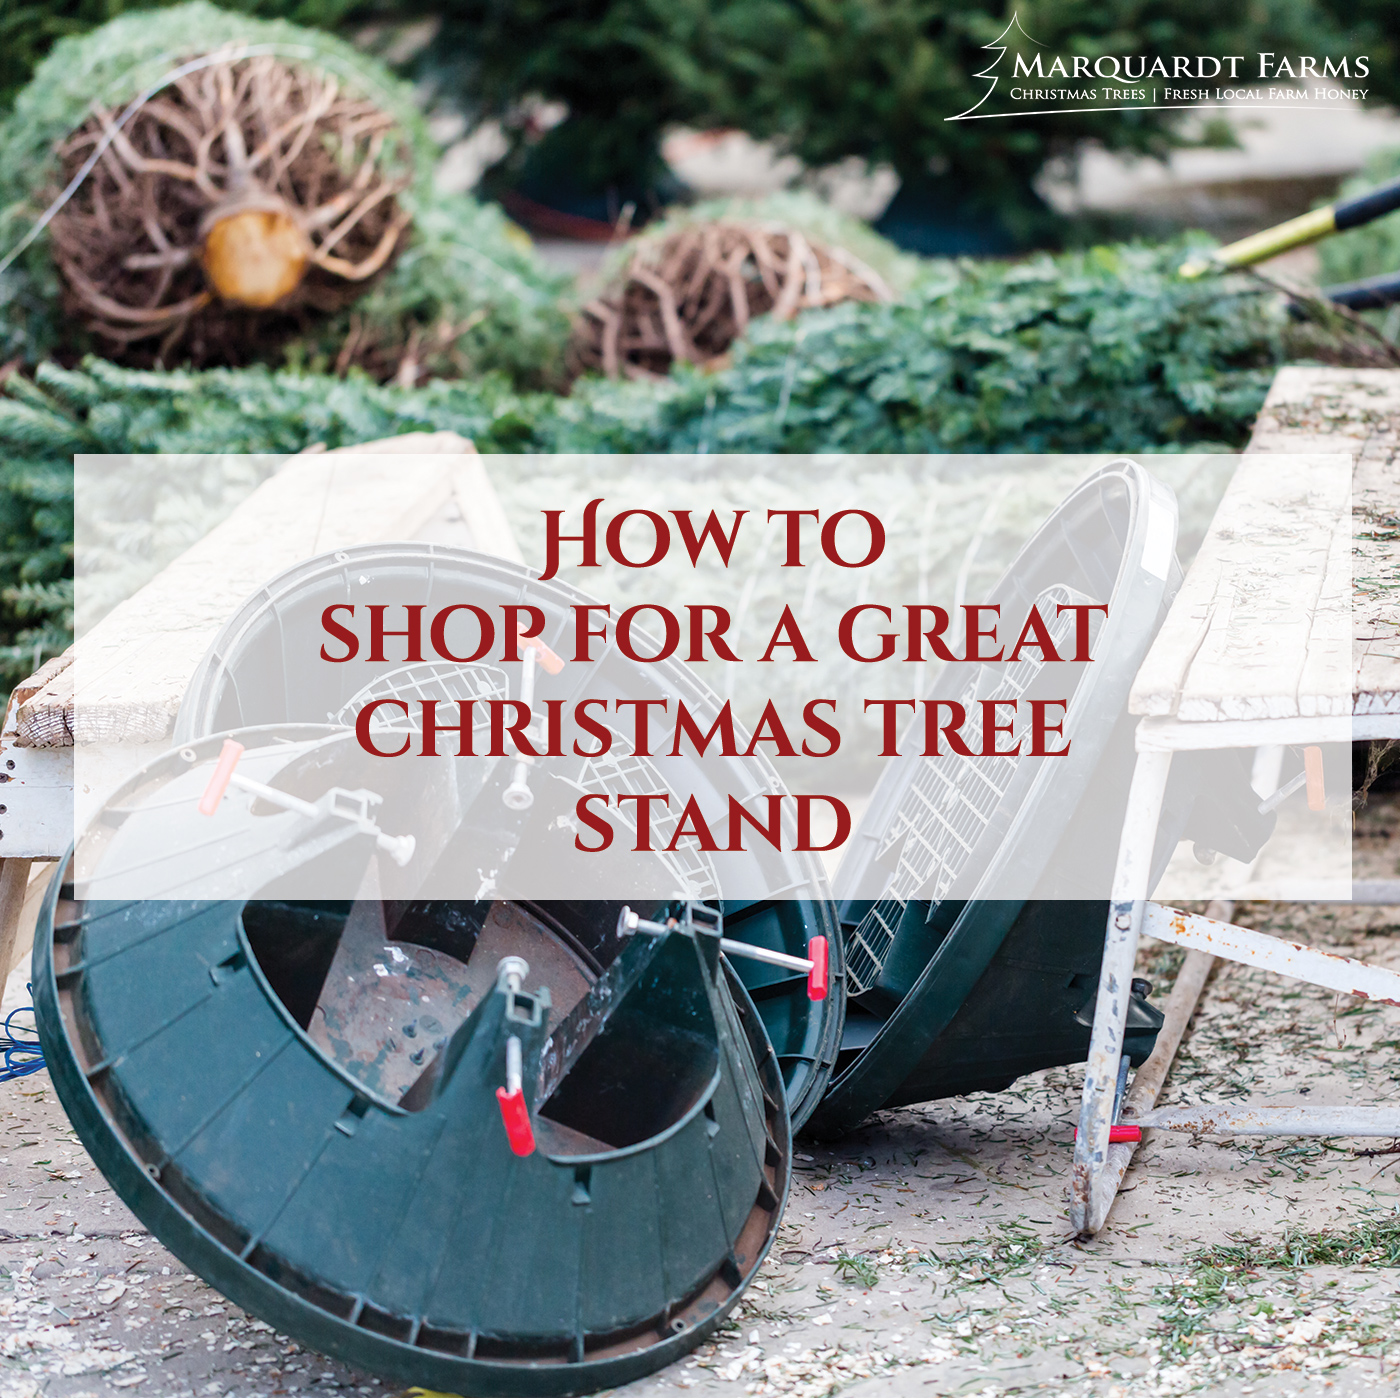 How To Shop for A Good Christmas Tree Stand - Marquardt Farms